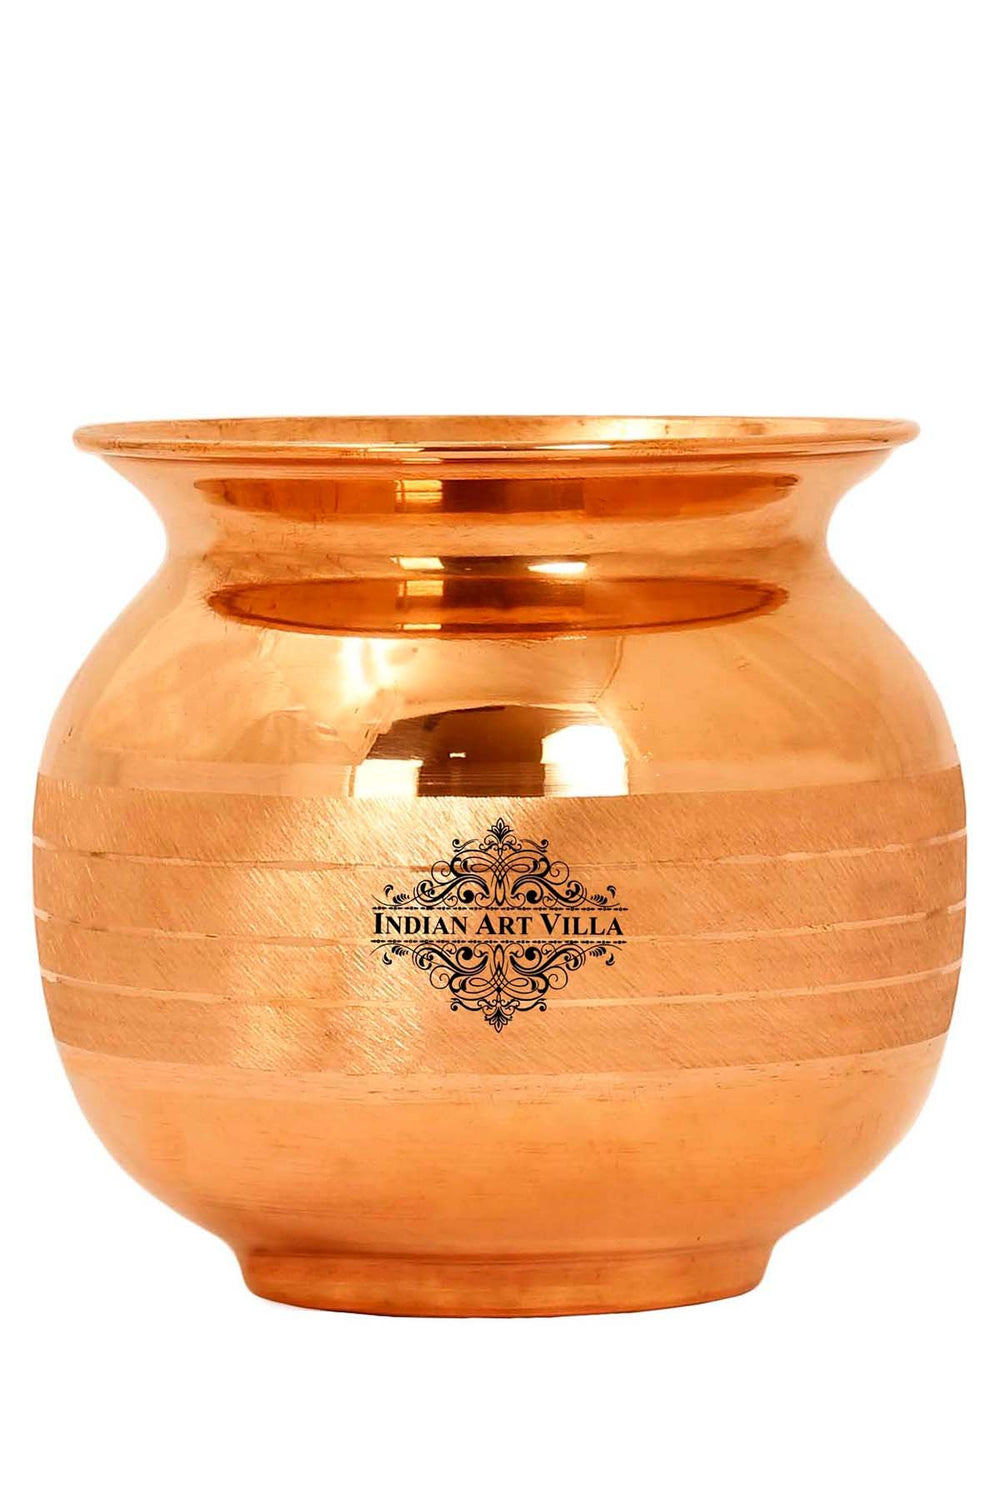 IndianArtVilla Best Quality Surya Namaskar Lota Pot, Puja Wedding Purpose, Temple Home, 850 ML, Brown